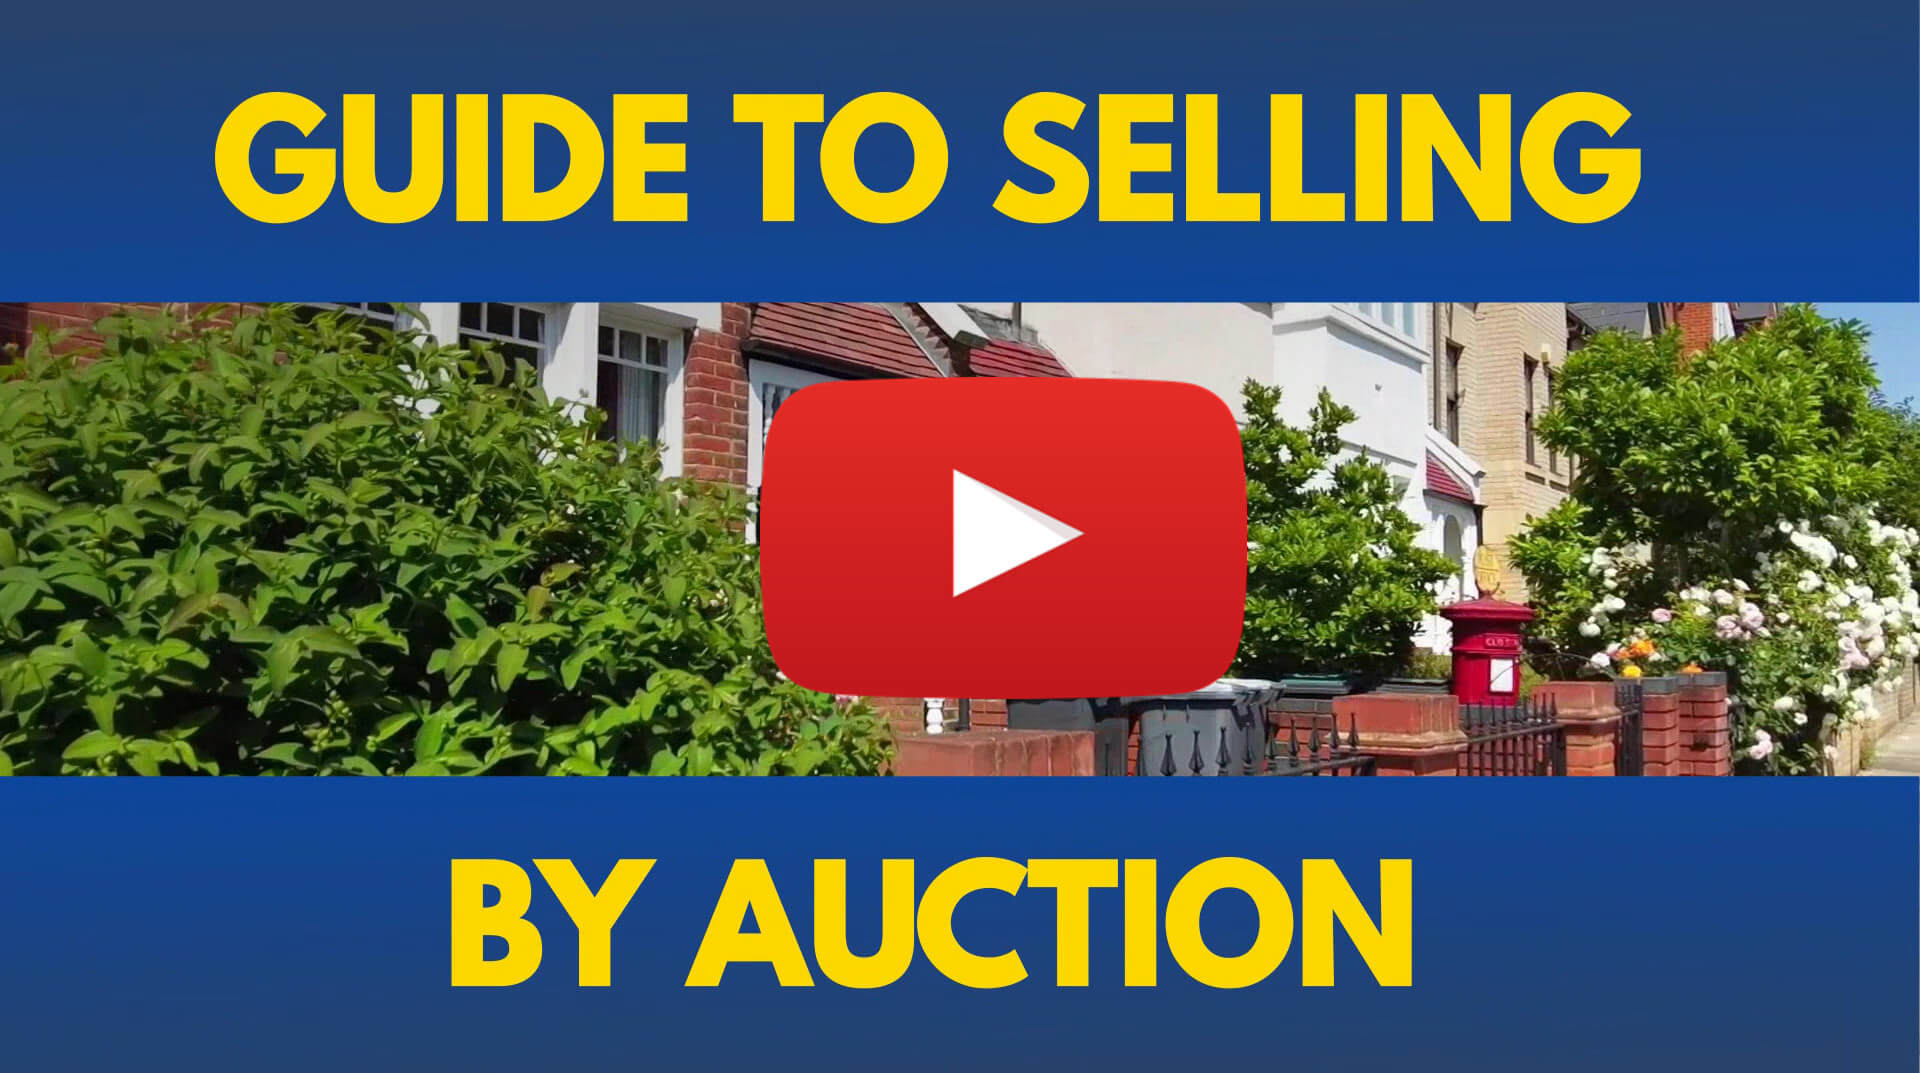 Guide to Selling a House by Auction - Watch Our Video